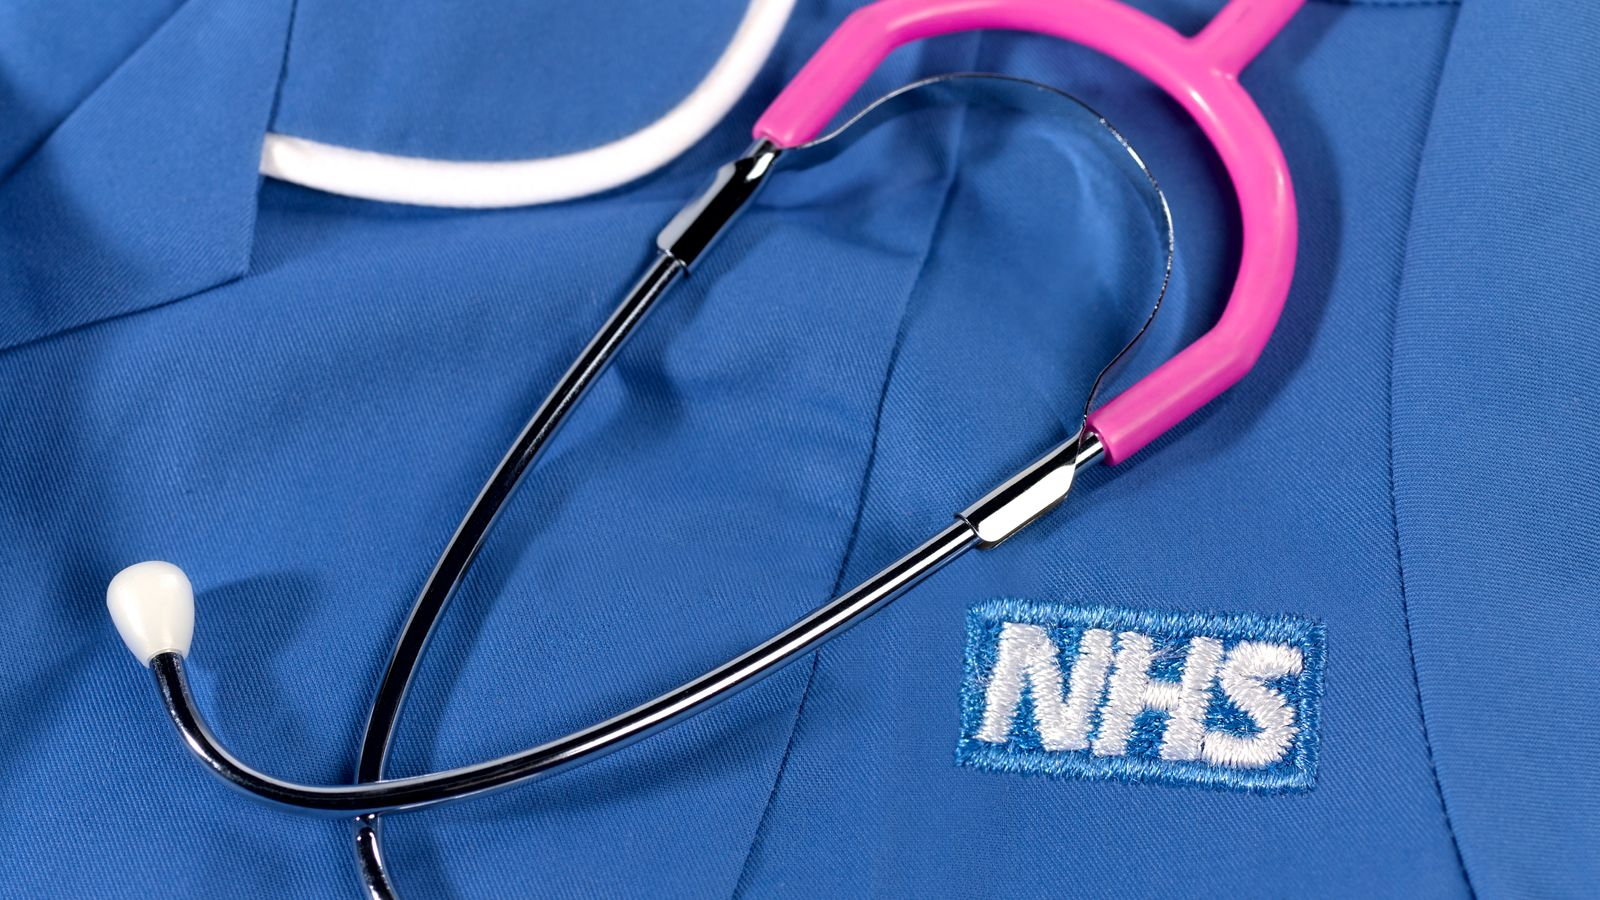 NHS toolkit to speed up diagnosis of MS and Parkinson's